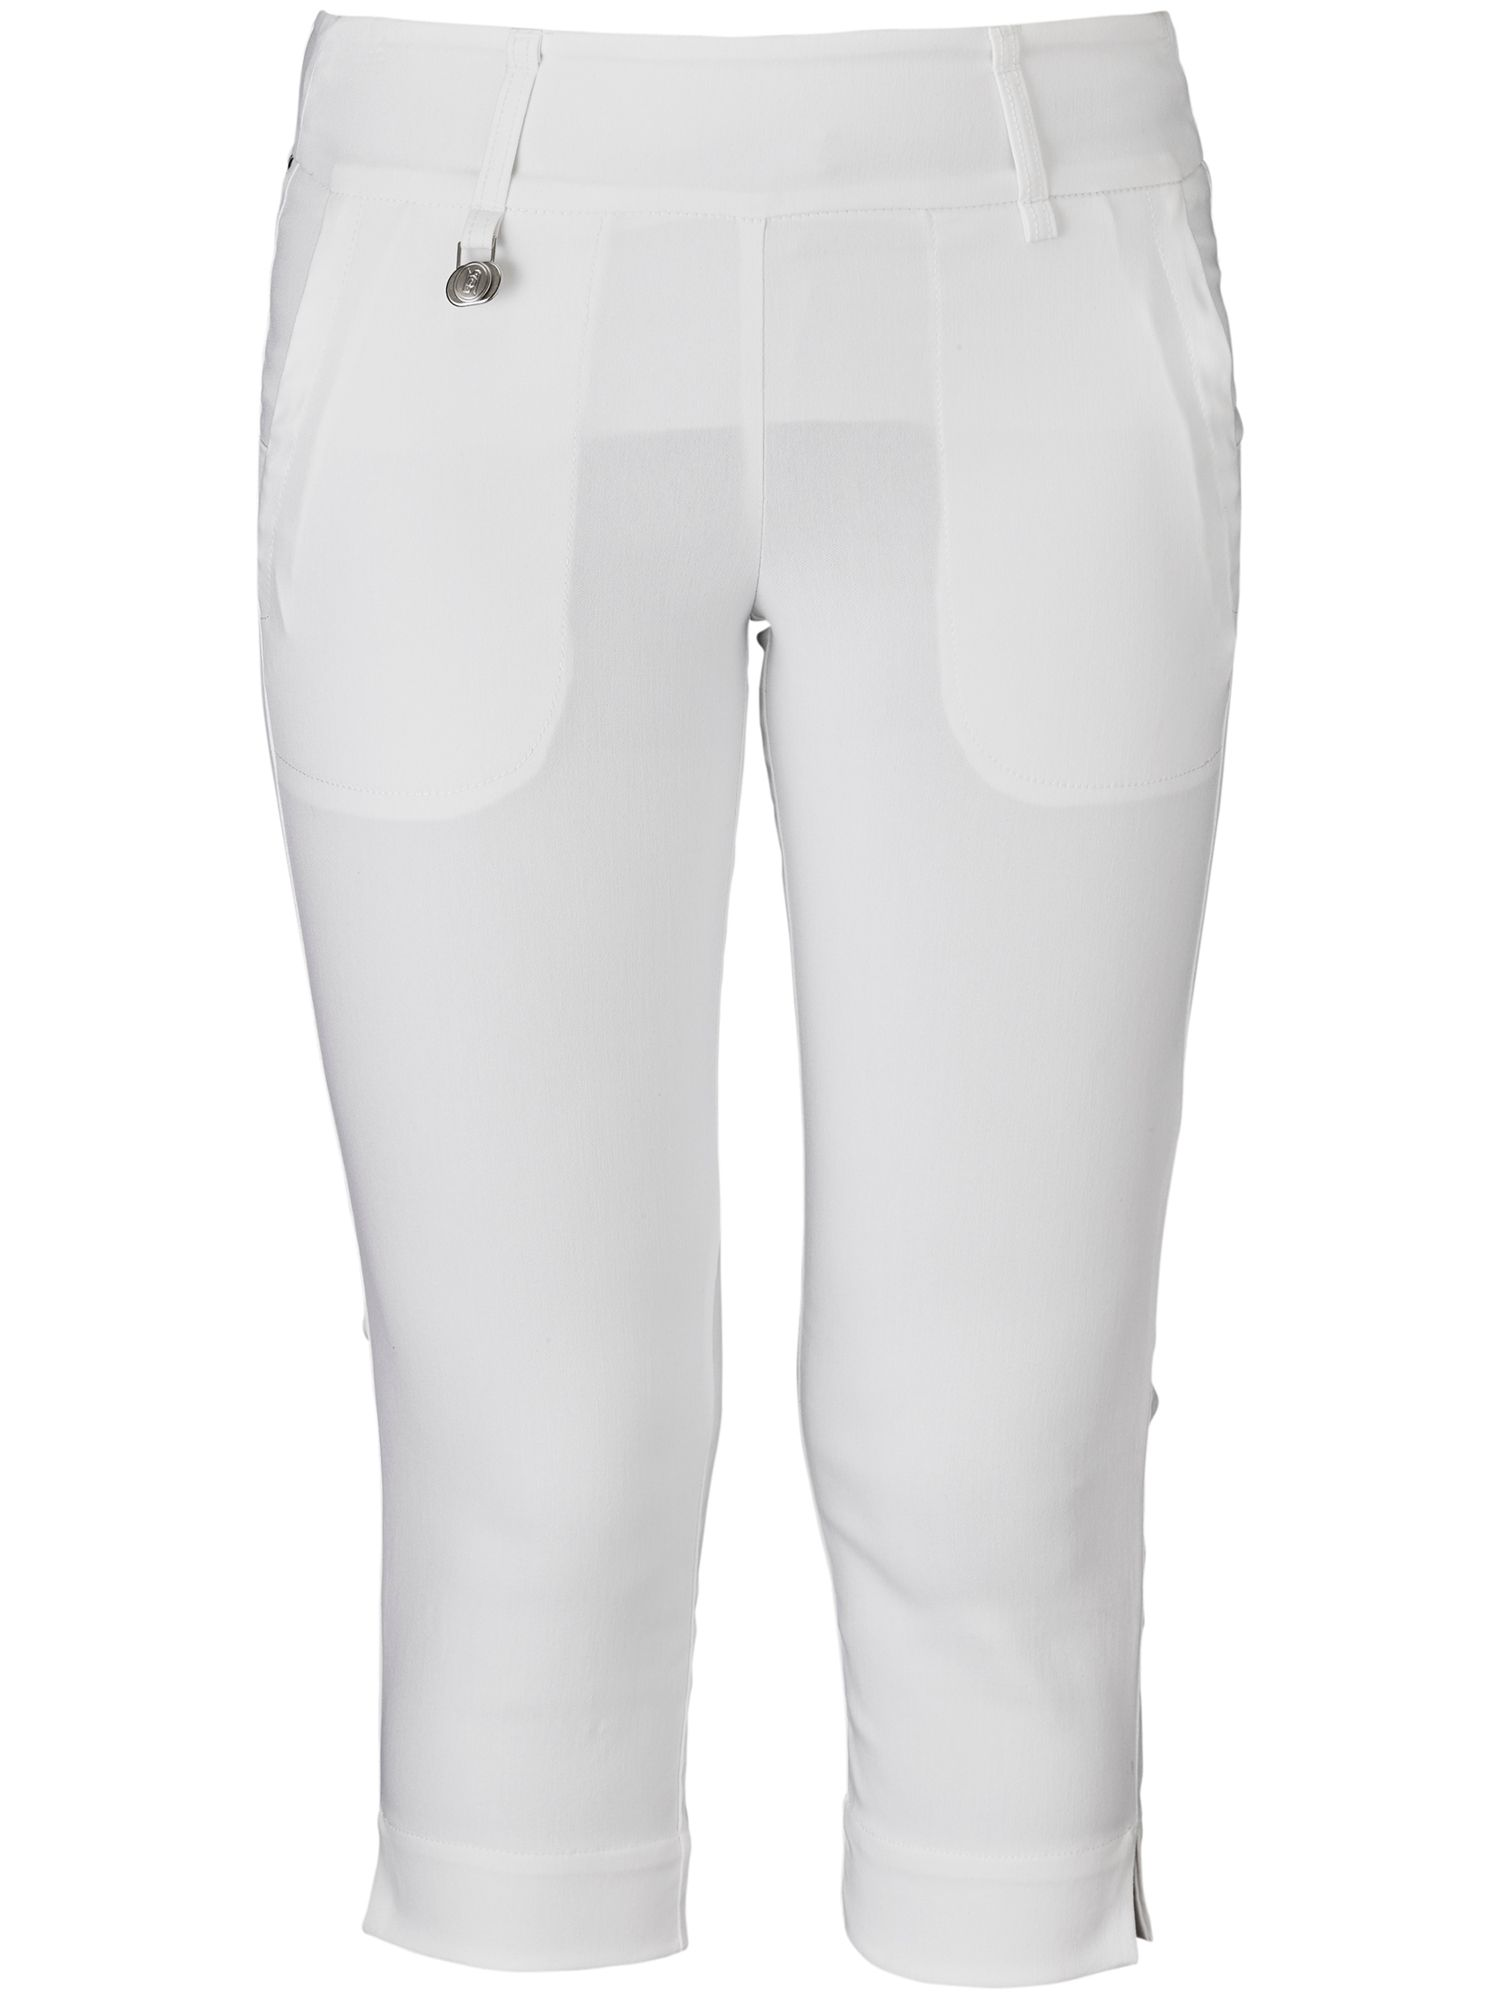 Daily Sports Magic Capri, White